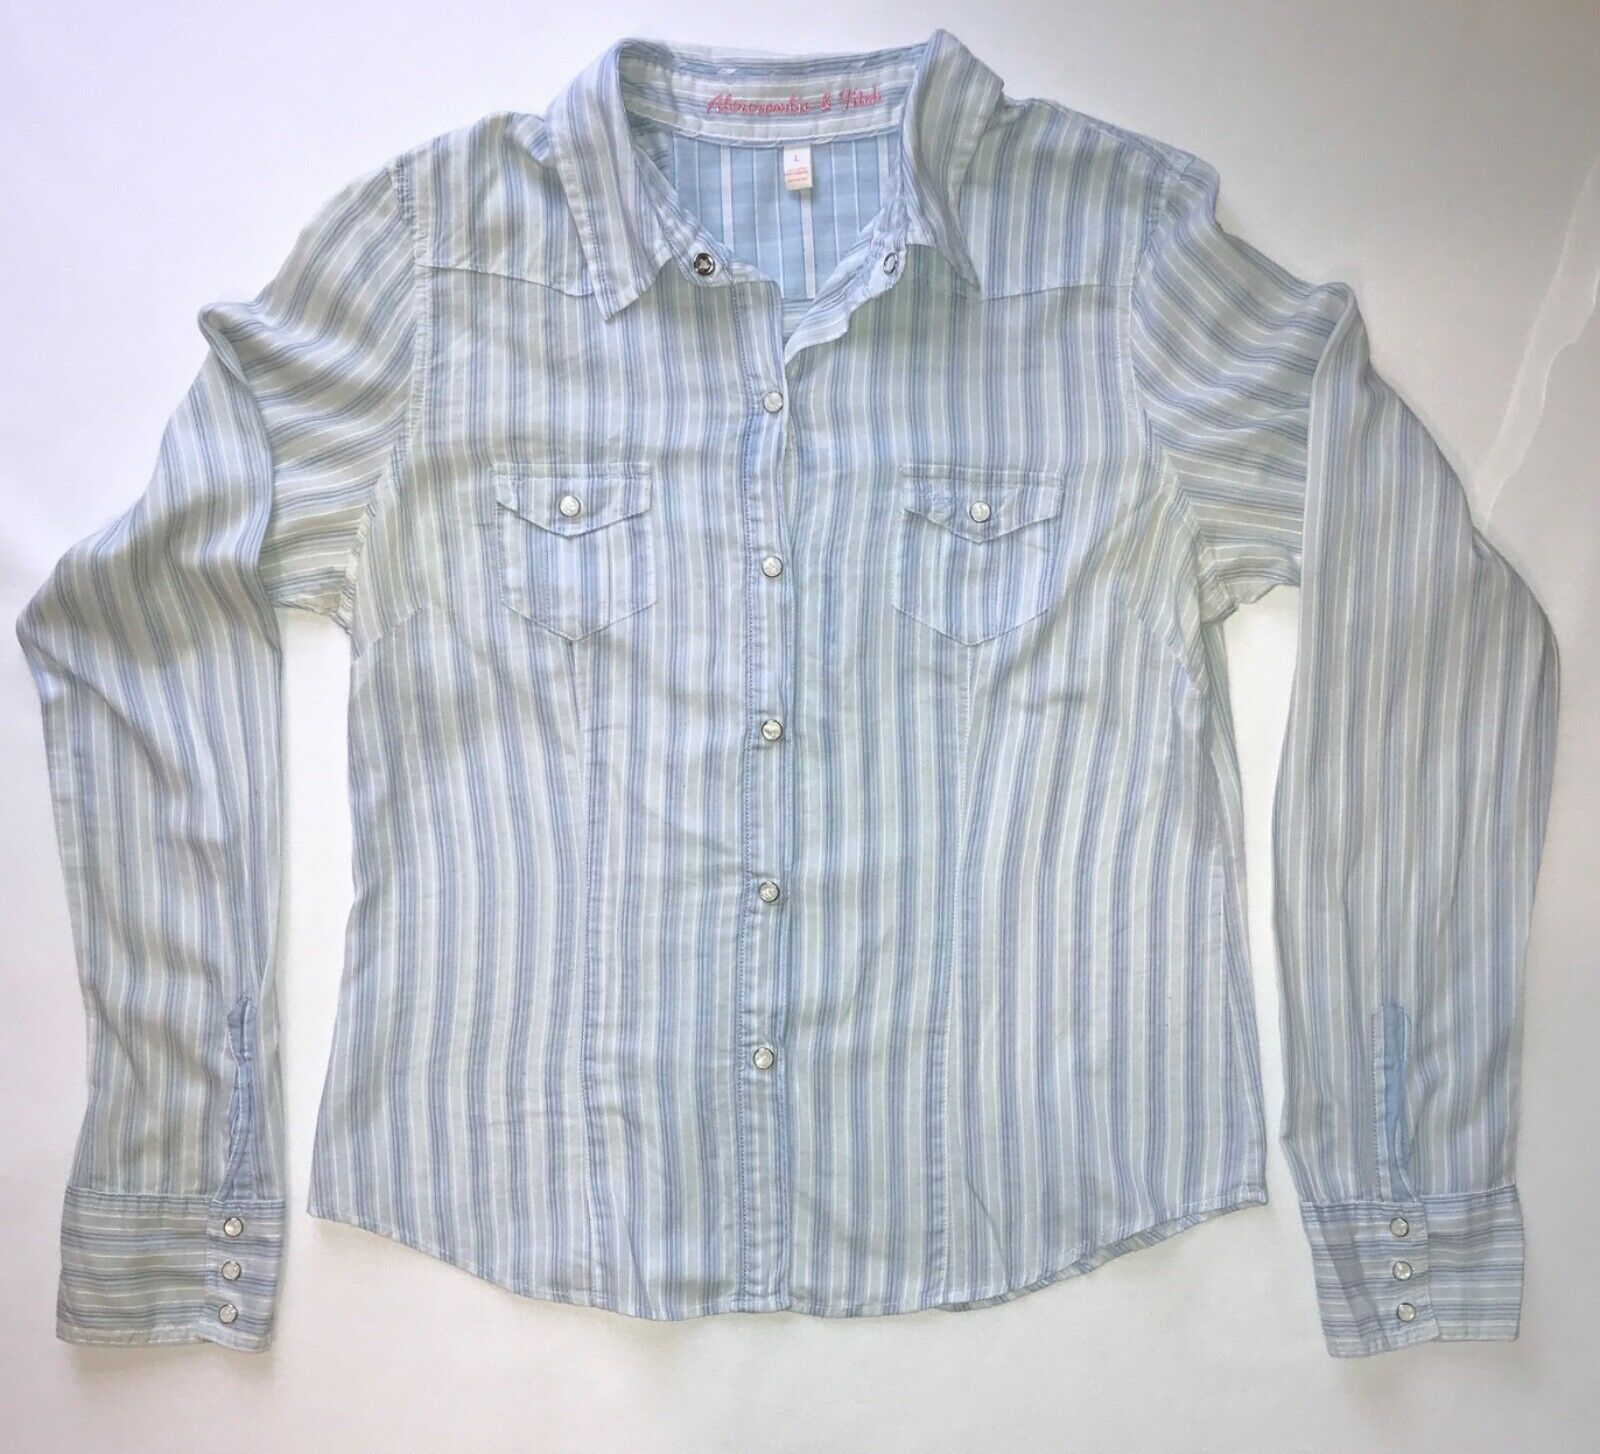 Primary image for Striped Long Sleeve Button Down Shirt by Abercrombie & Fitch in Blue w/Stripes L